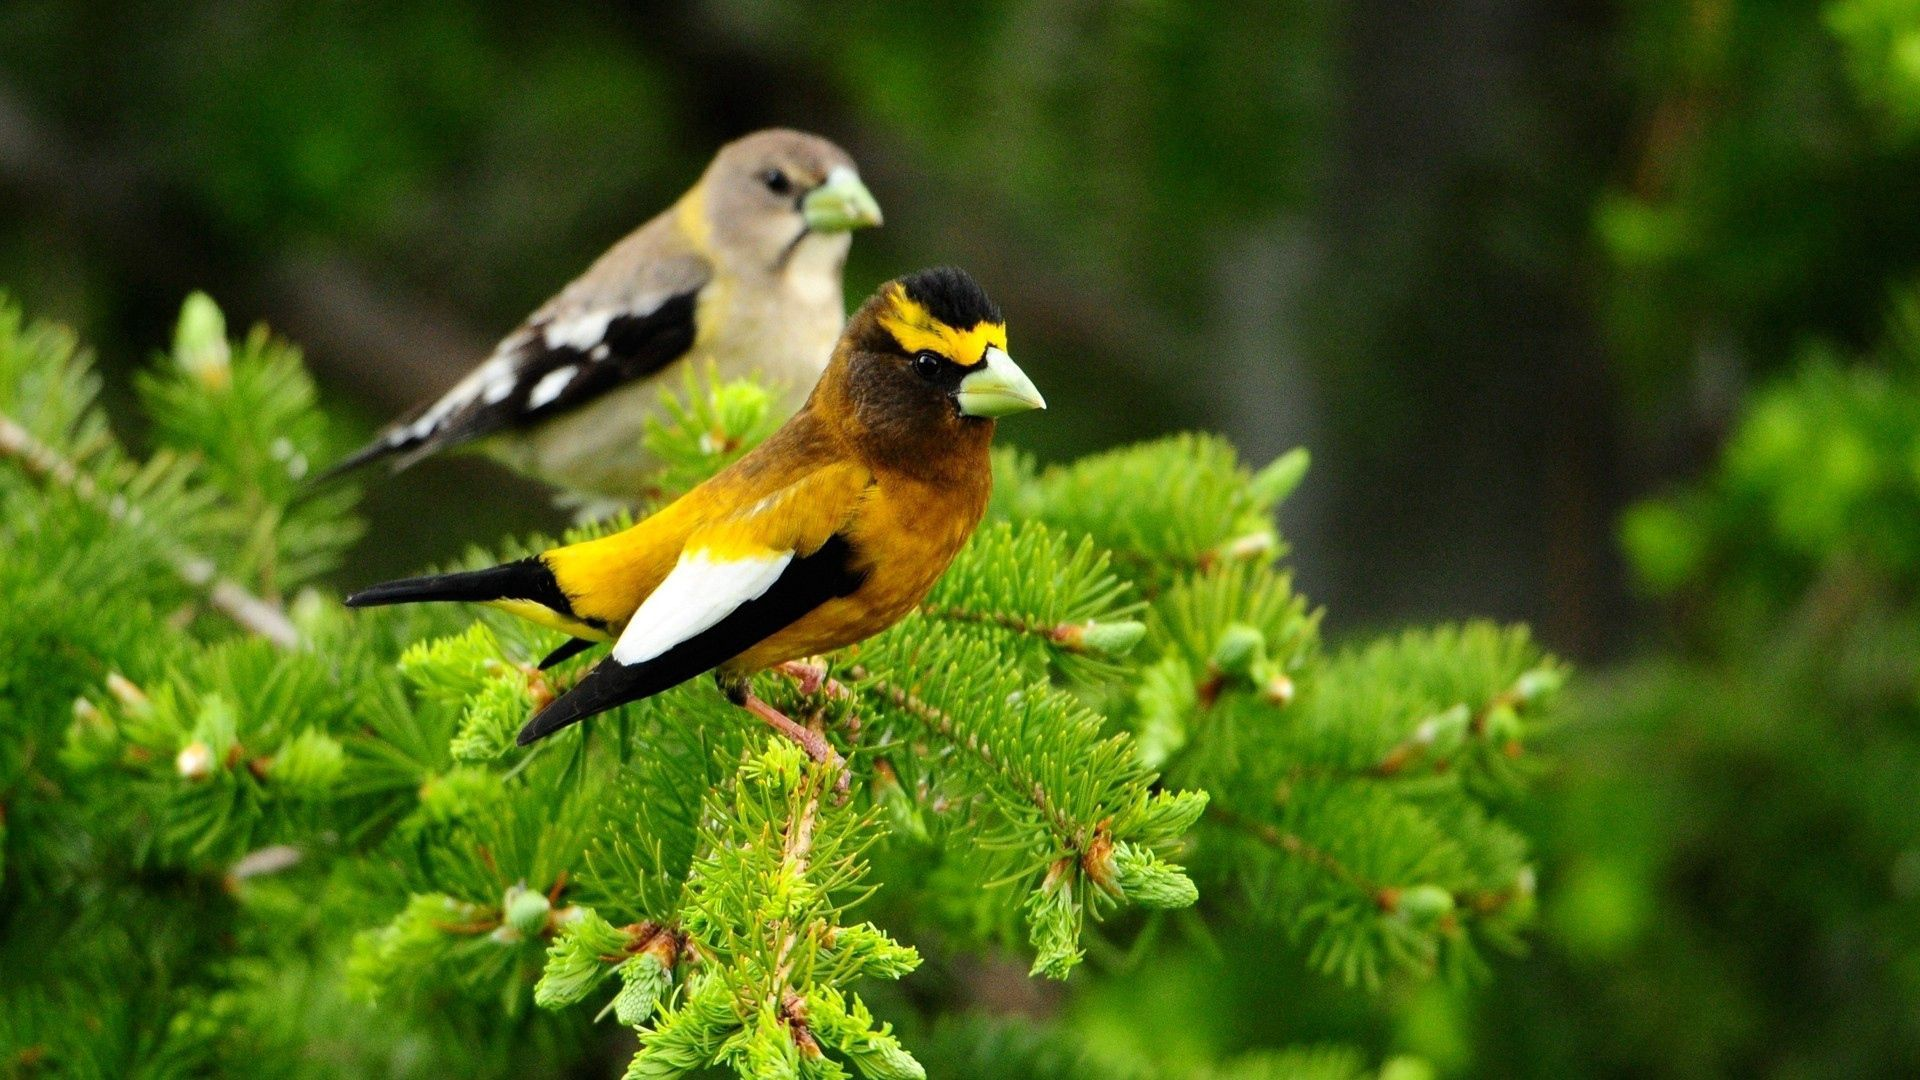 72970 download wallpaper Animals, Couple, Pair, Branch, Sit, Leaves, Birds screensavers and pictures for free